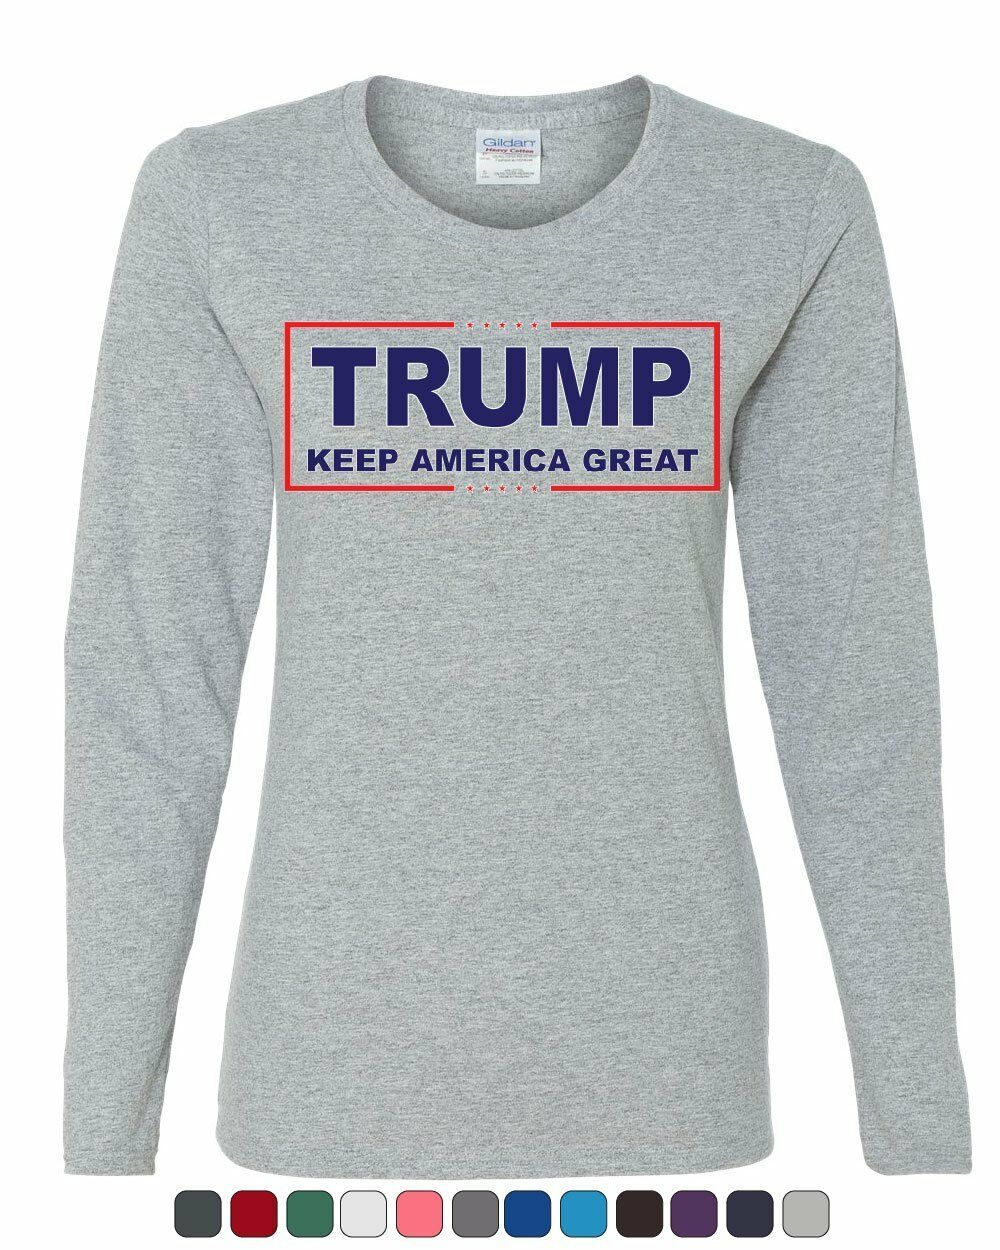 Primary image for Trump Keep America Great Women's Long Sleeve Tee 2020 Election Republican POTUS